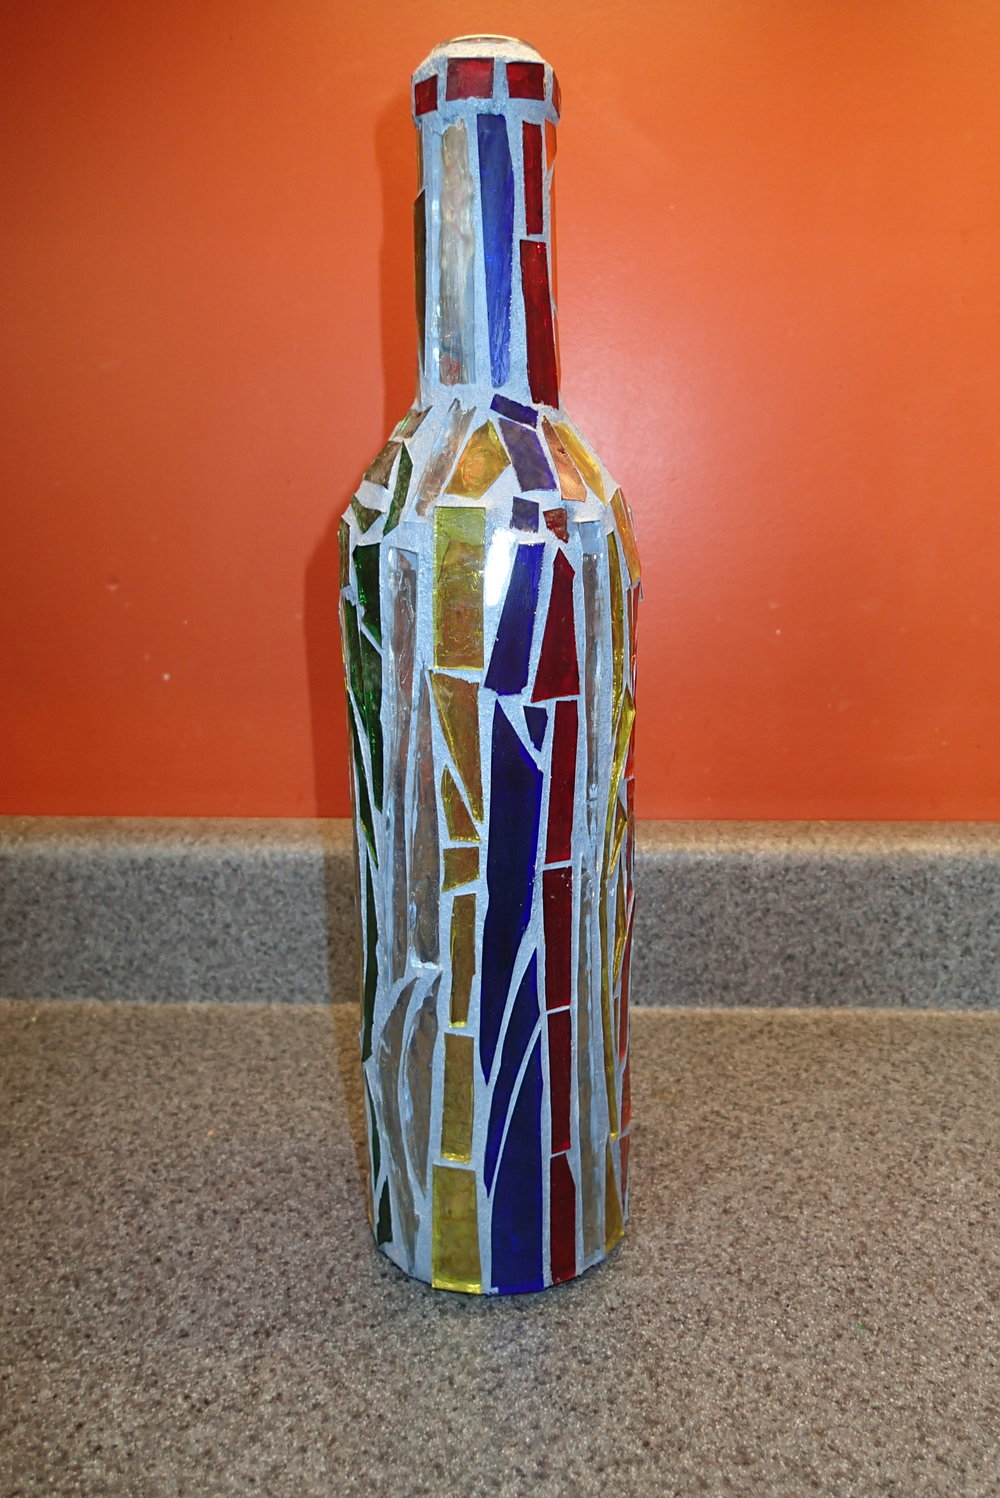 mosaic_bottle.jpg